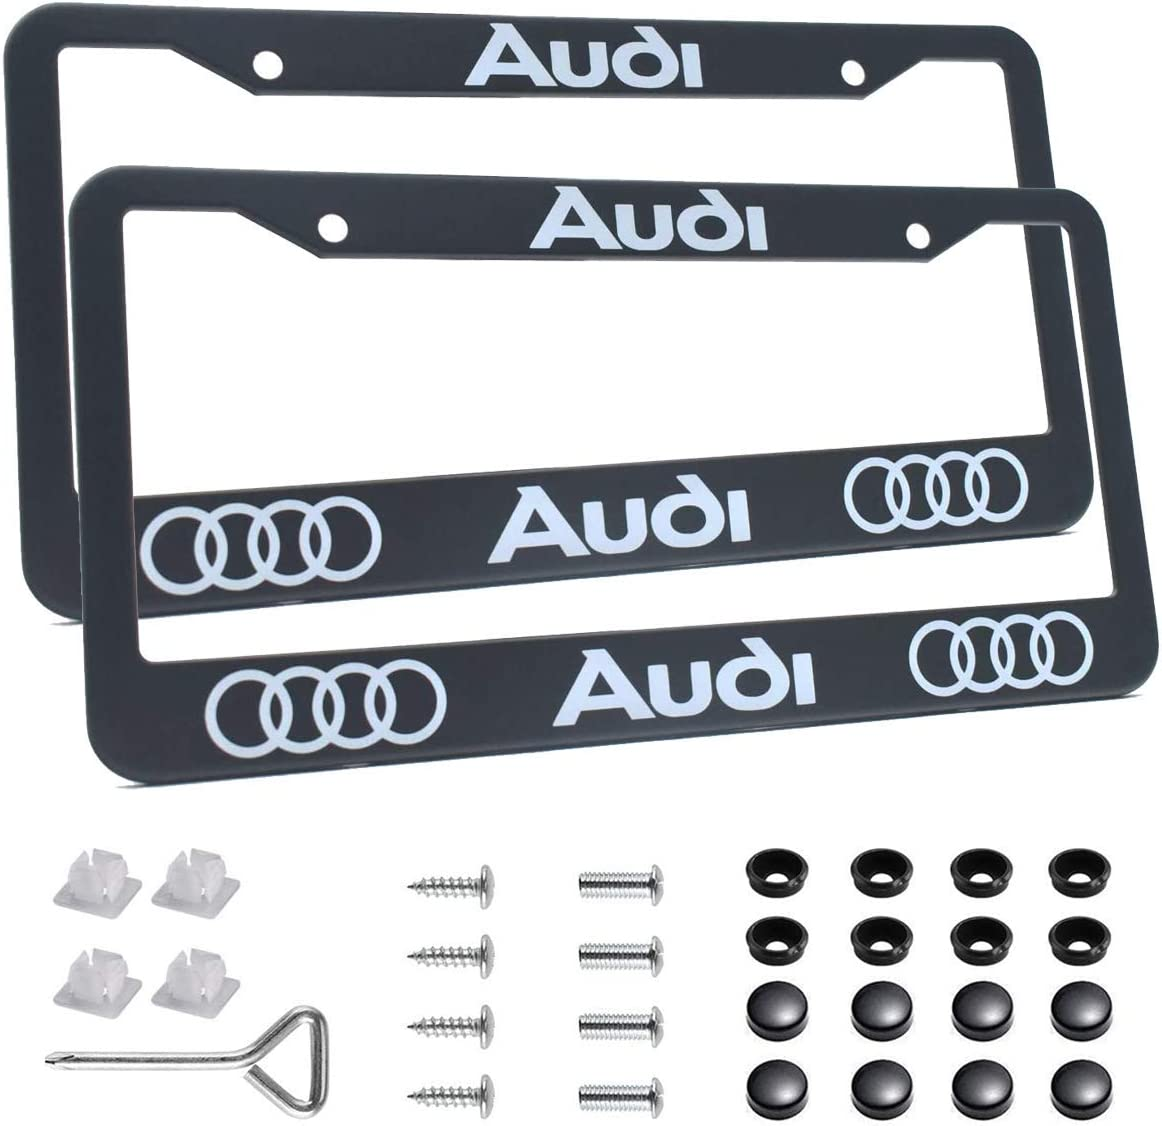 2 pcs License Plate Frames for Cadillac 2 Holes Premium Black Aluminum Alloy Metal Cadillac Logo License Plate Cover Holder Compatible All Vehicle License Plate Tag Cover